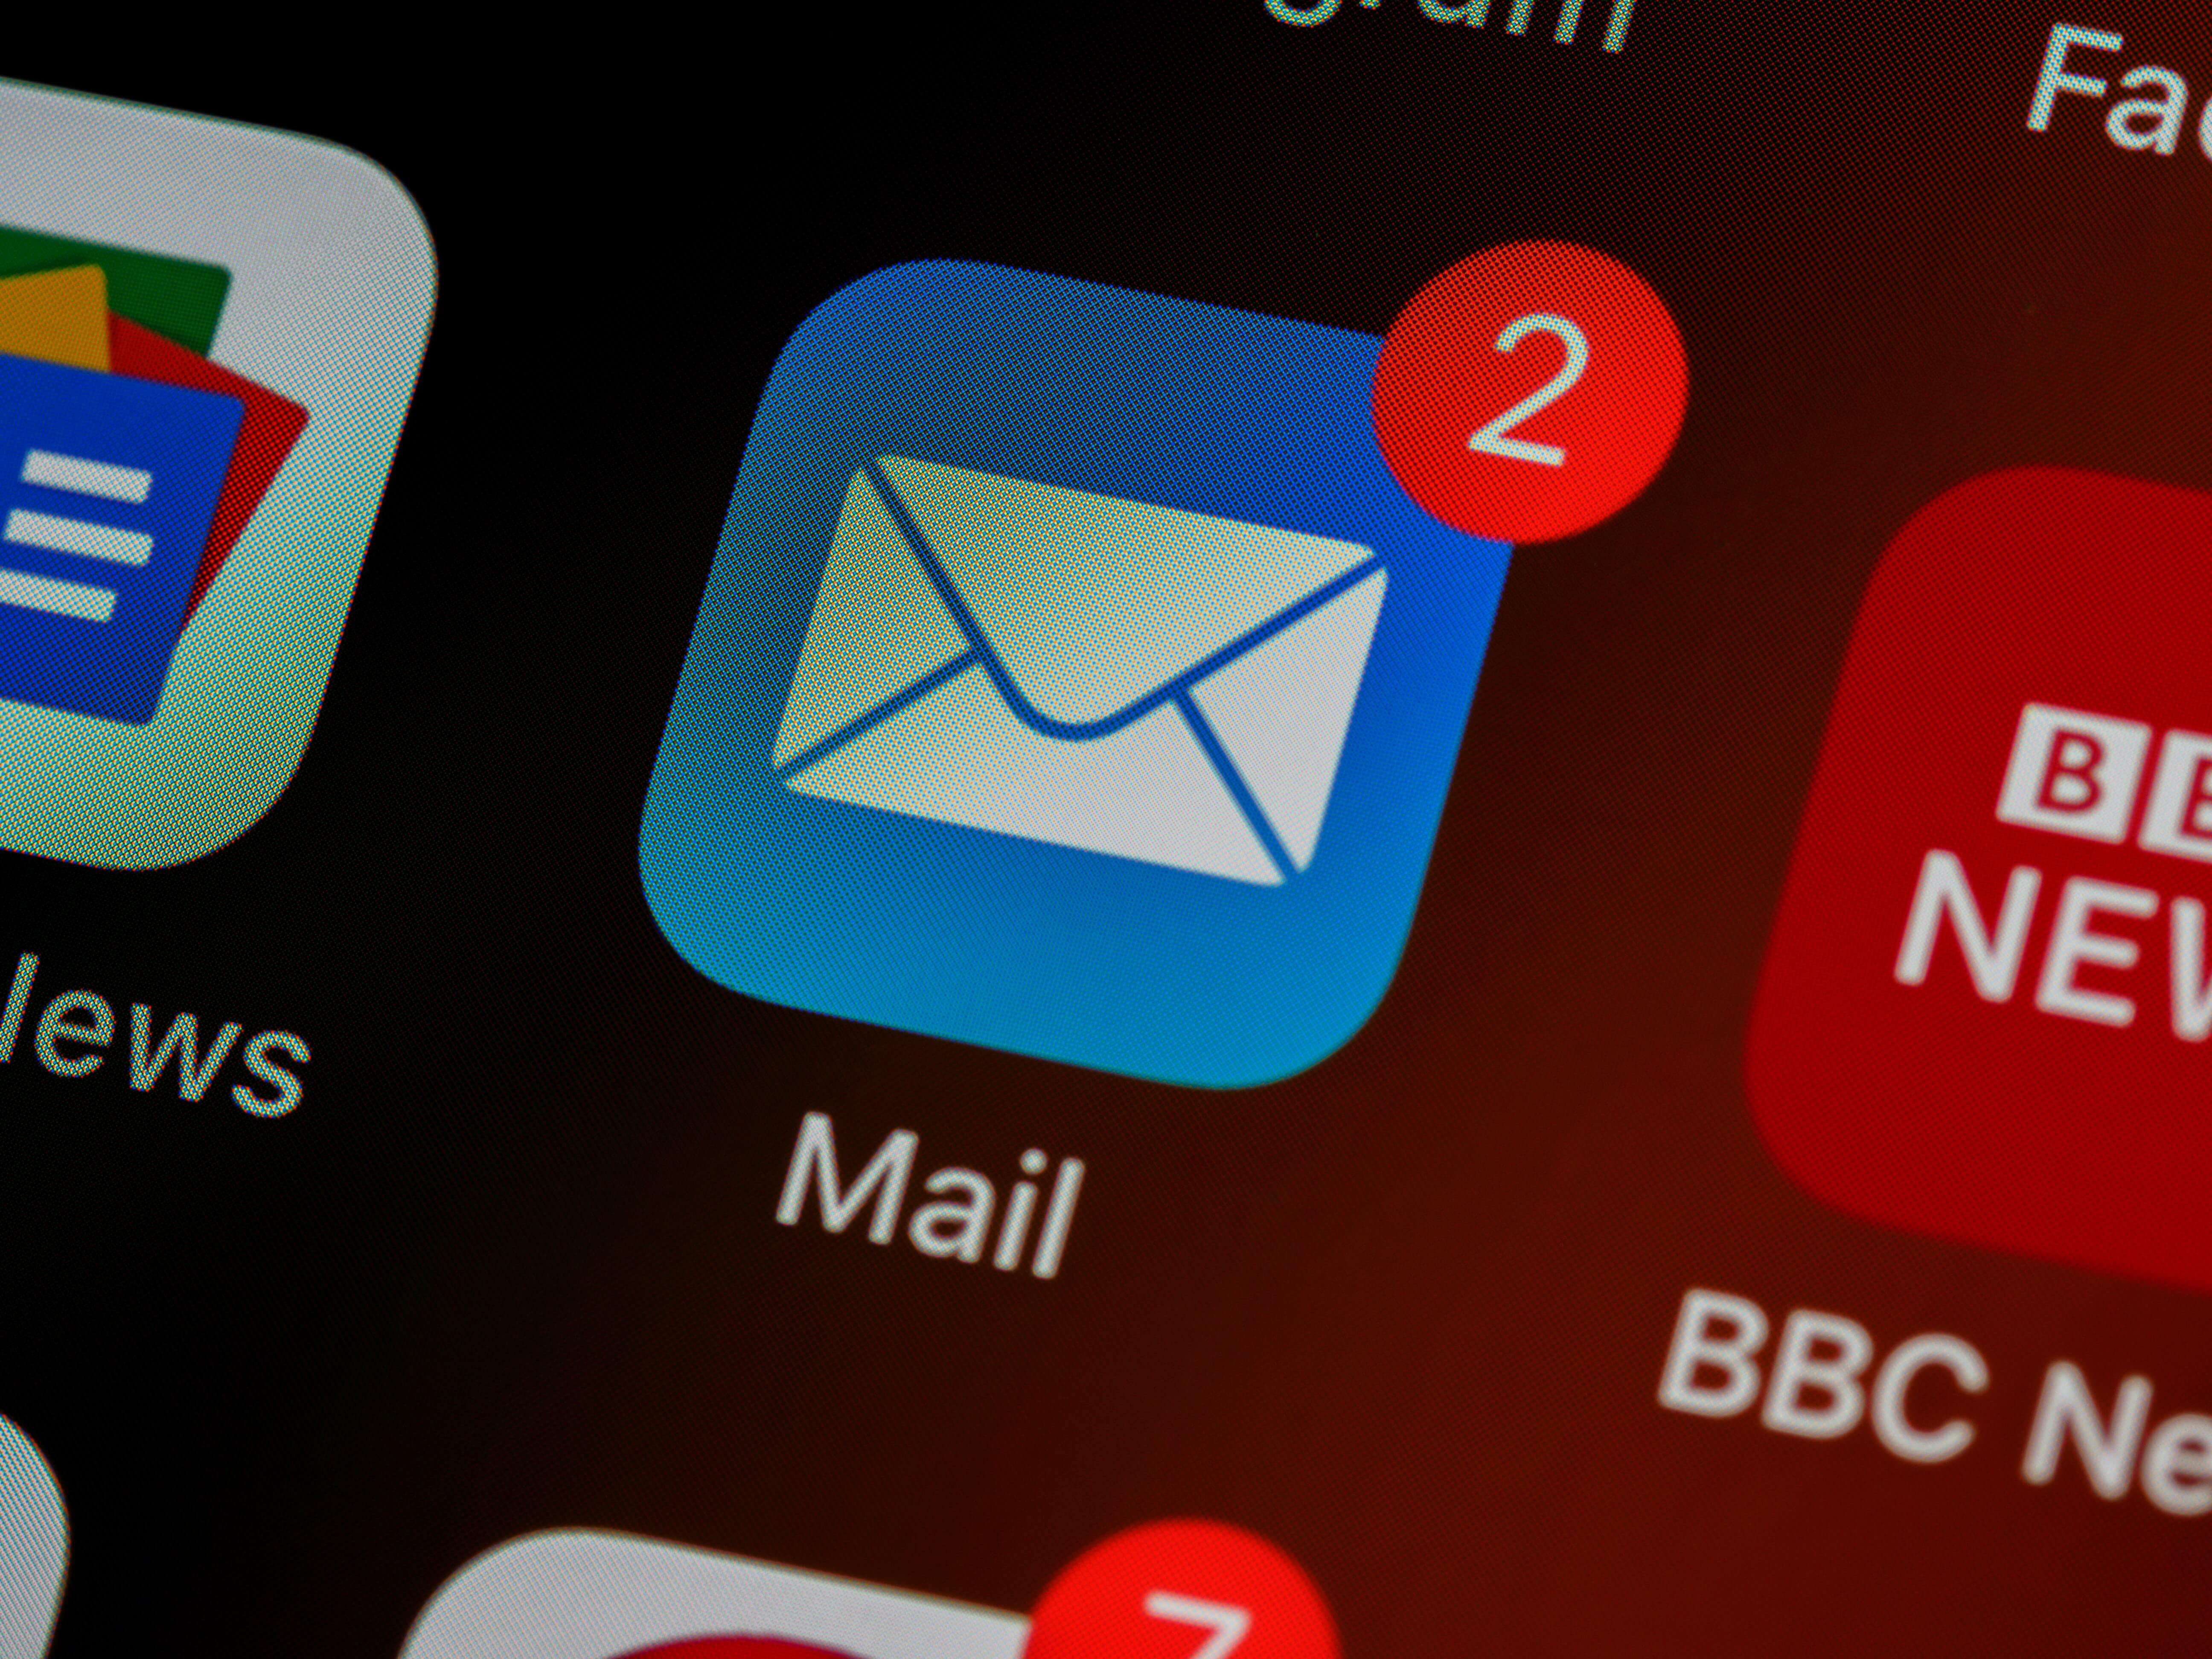 Email icon on an iphone